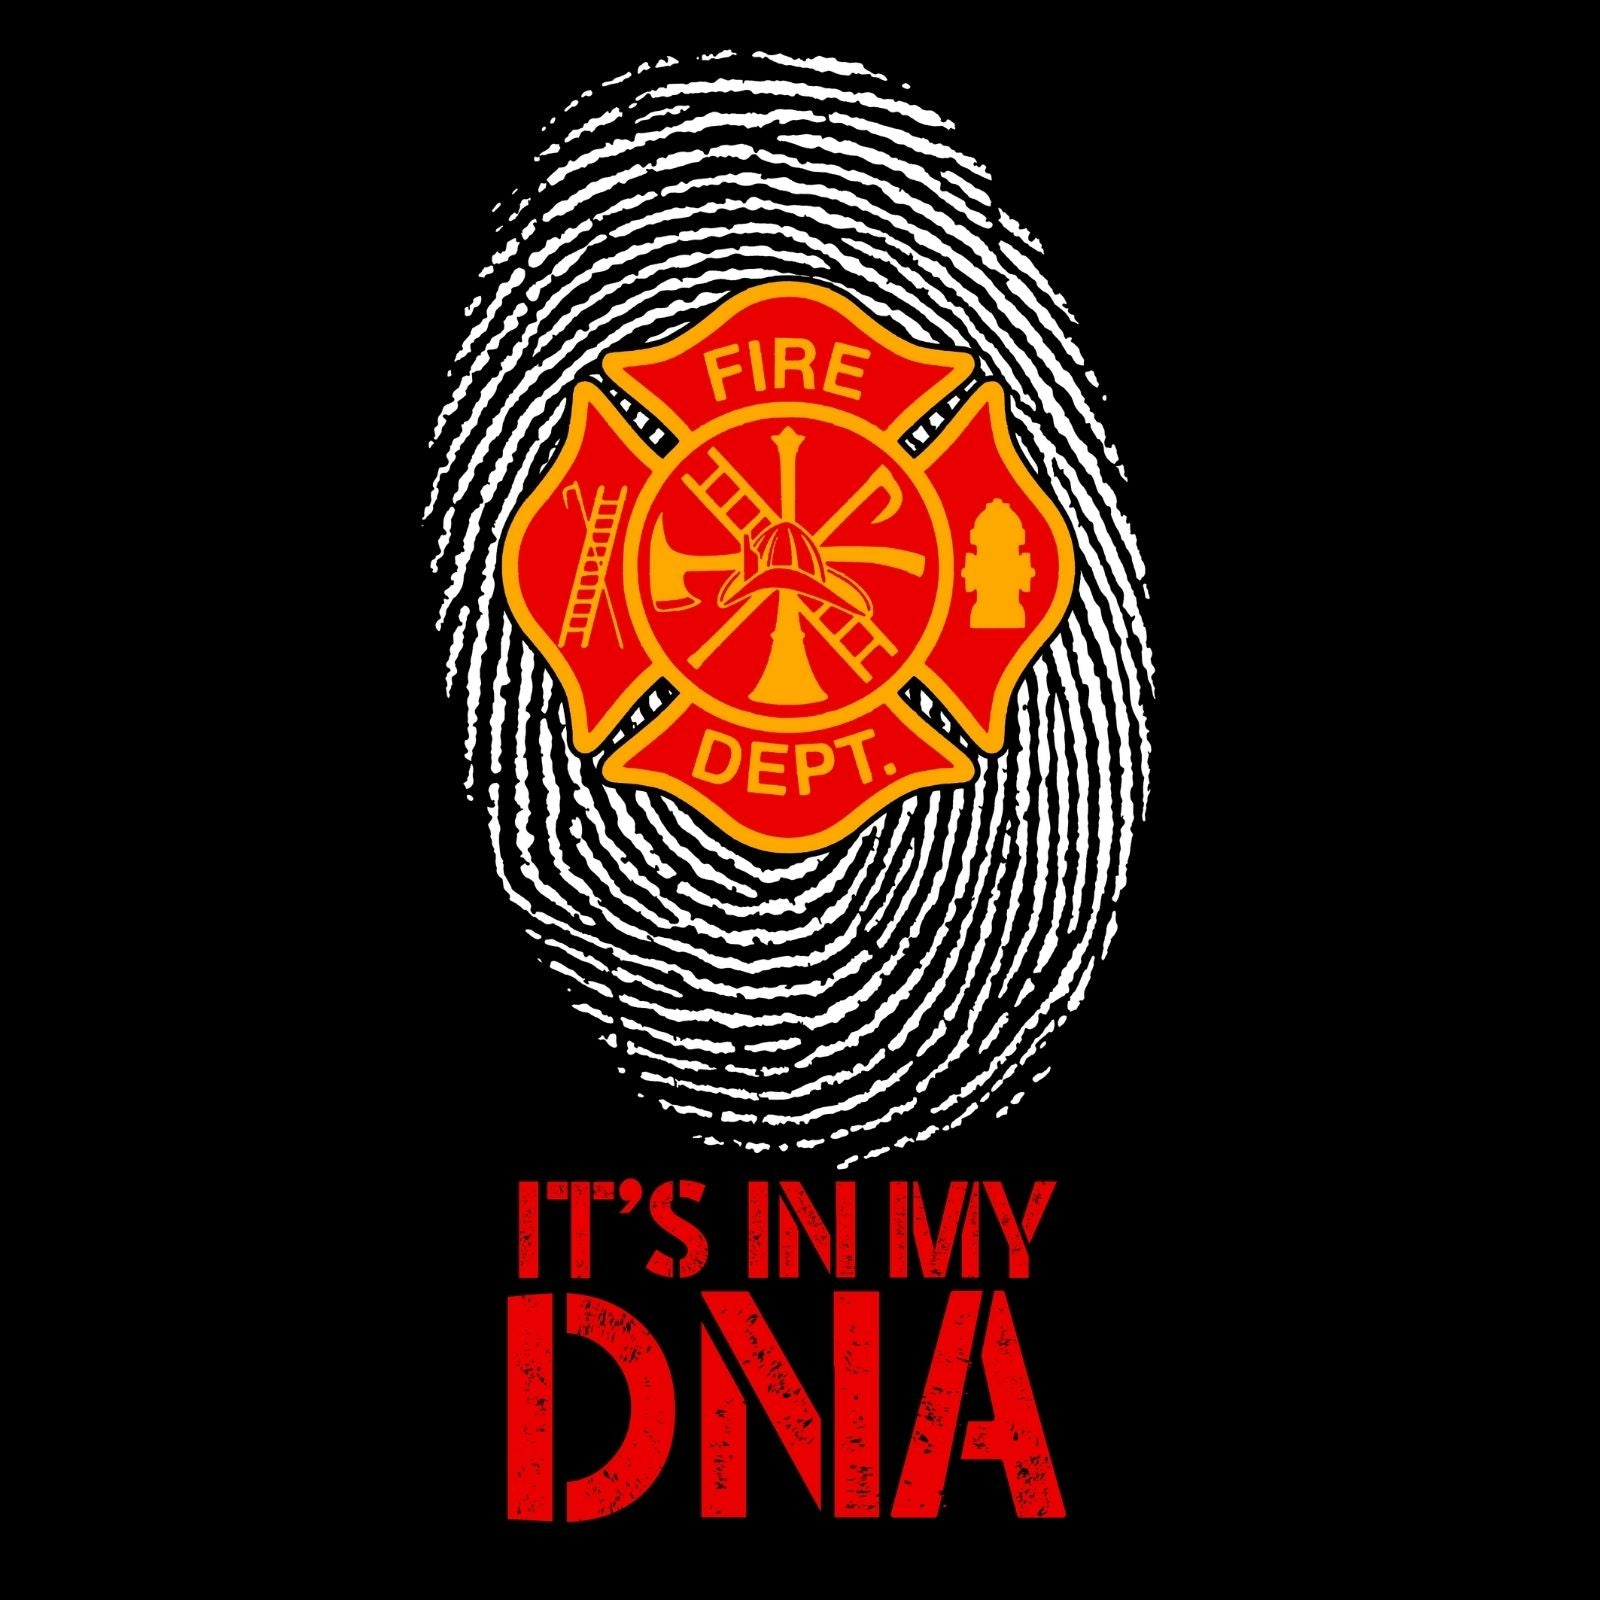 It's In My DNA - Bastard Graphics